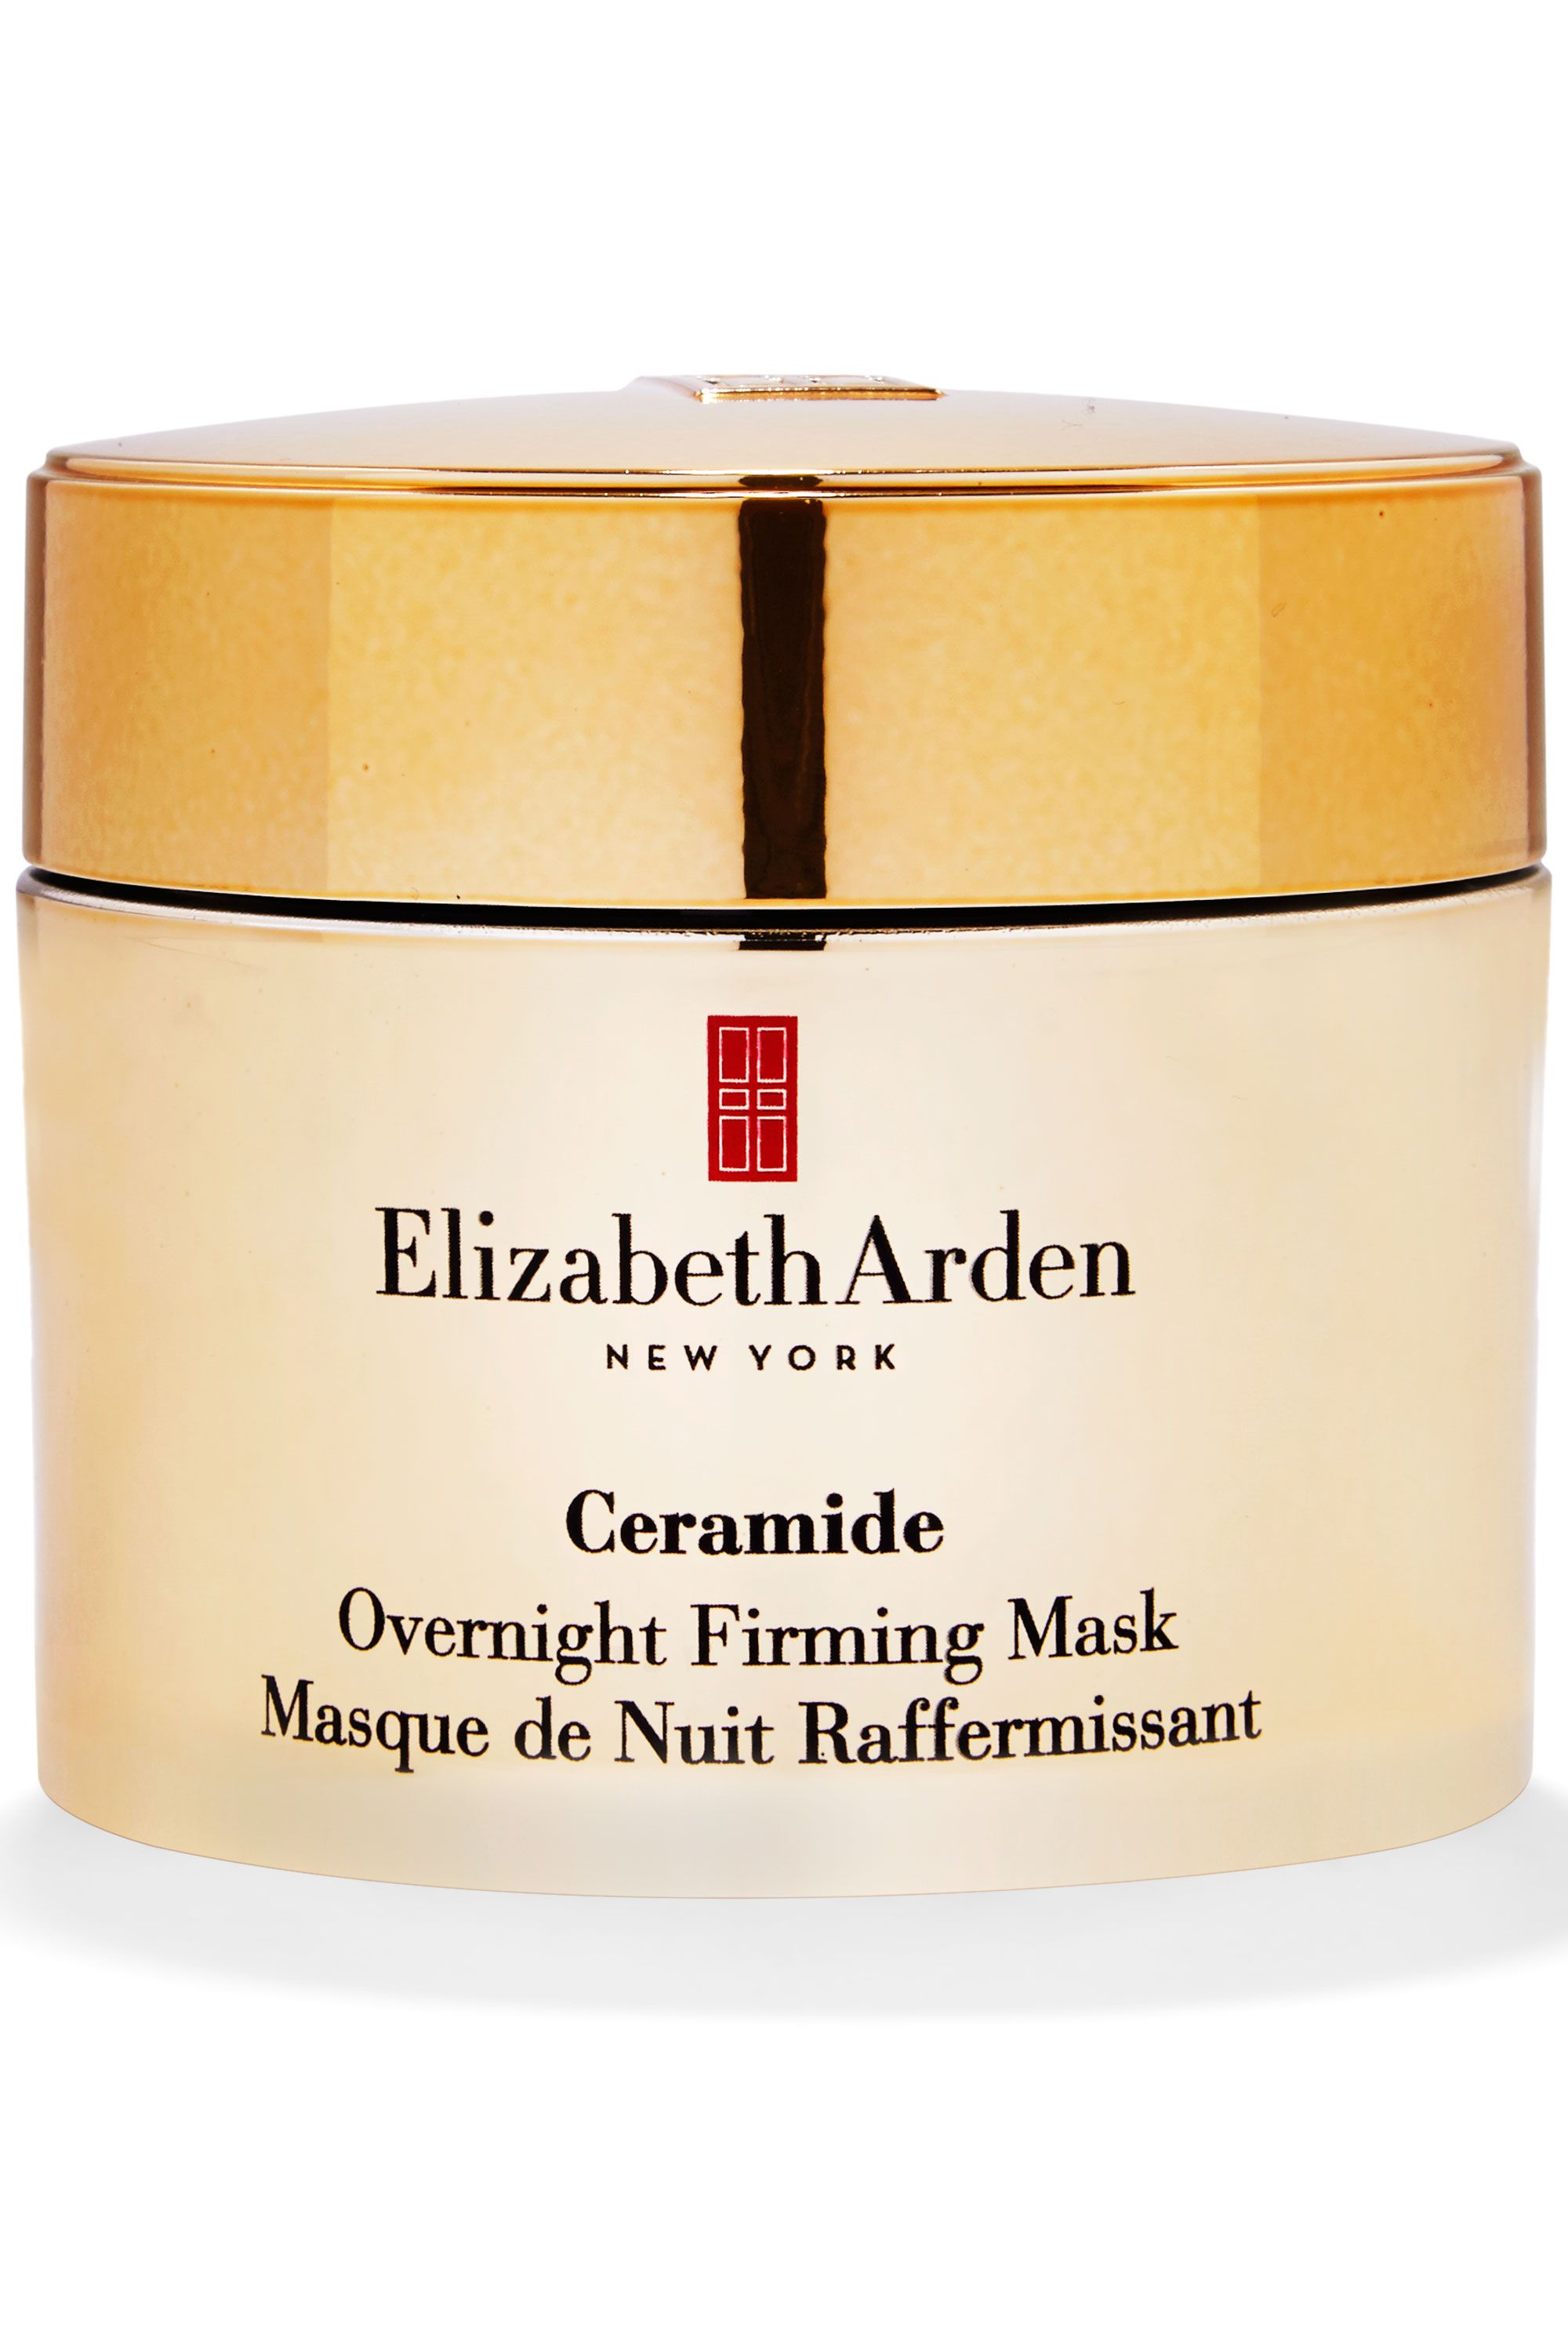 "<p>$88, <a href=""http://www.elizabetharden.com/Ceramide-Overnight-Firming-Mask/1001A0100067,default,pd.html?start=9&cgid=special-offers-purchase-with-purchase"">Elizabeth Arden</a>. </p>"